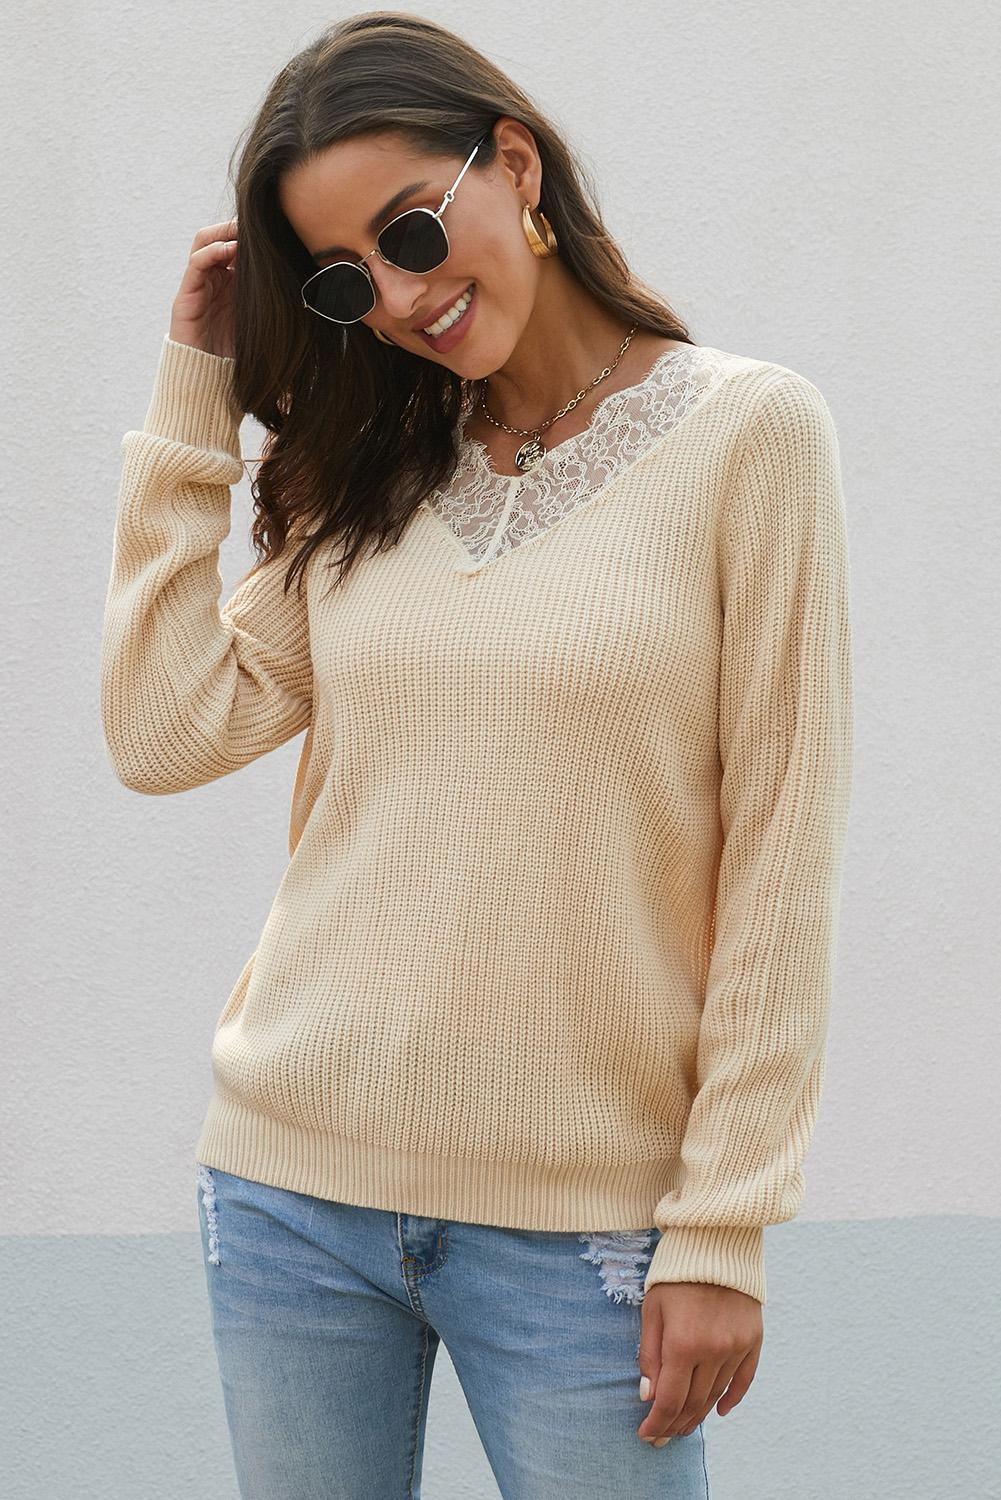 Chic Khaki Lace Collar V Neck Ribbed Sweater